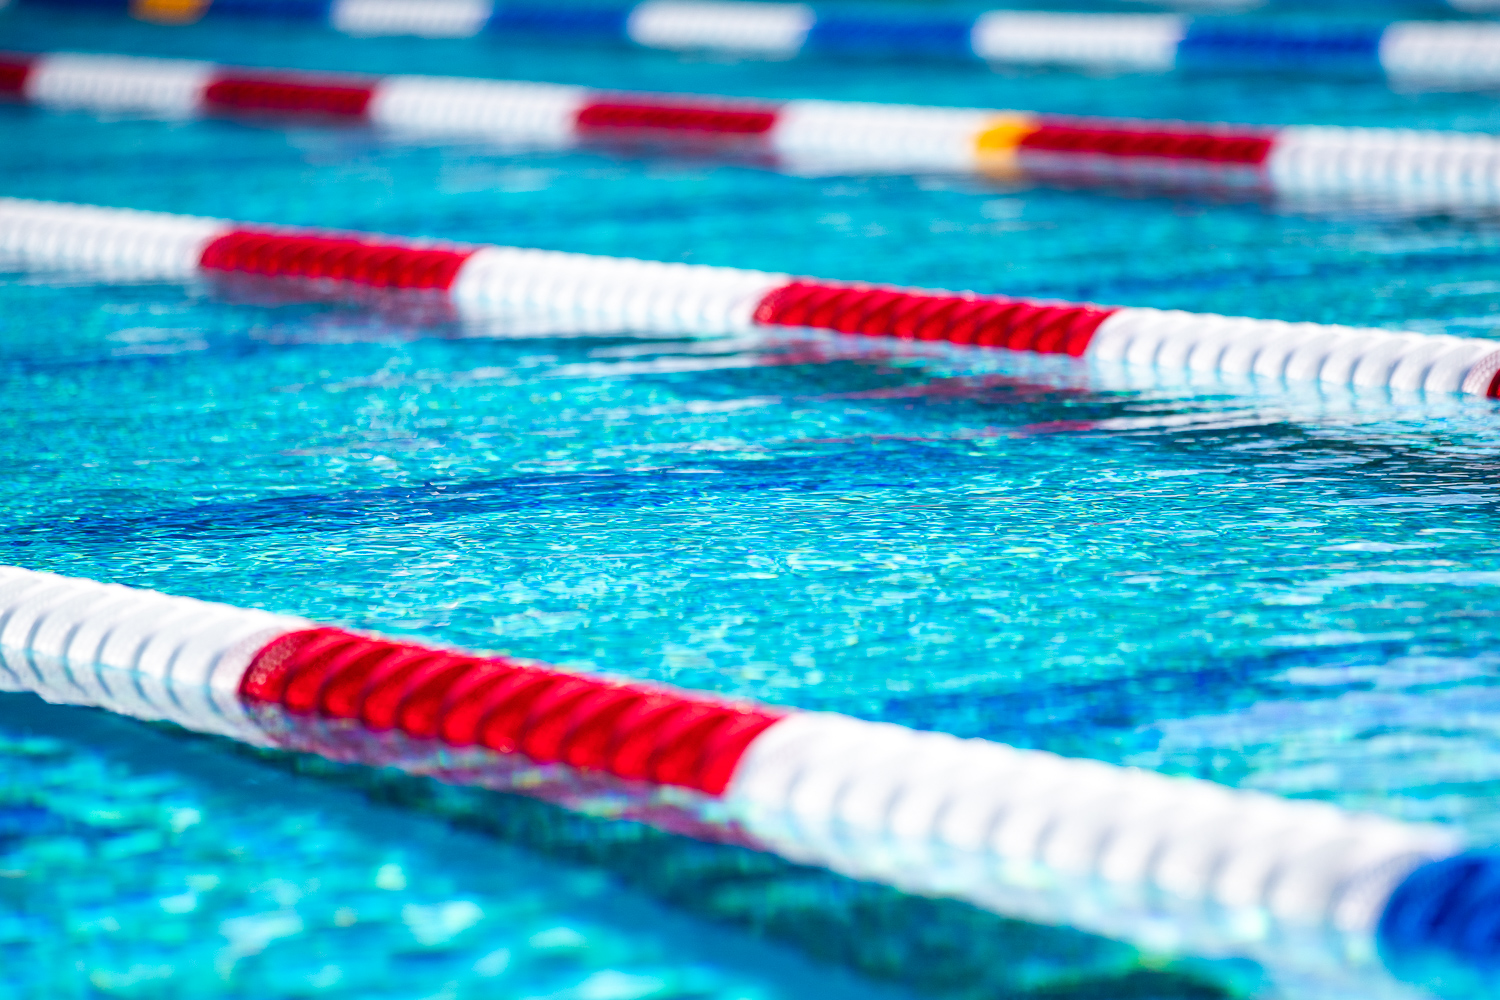 Former Swim Coach Savannah Reis Indicted on Two Counts of Sexual Battery in Mississippi